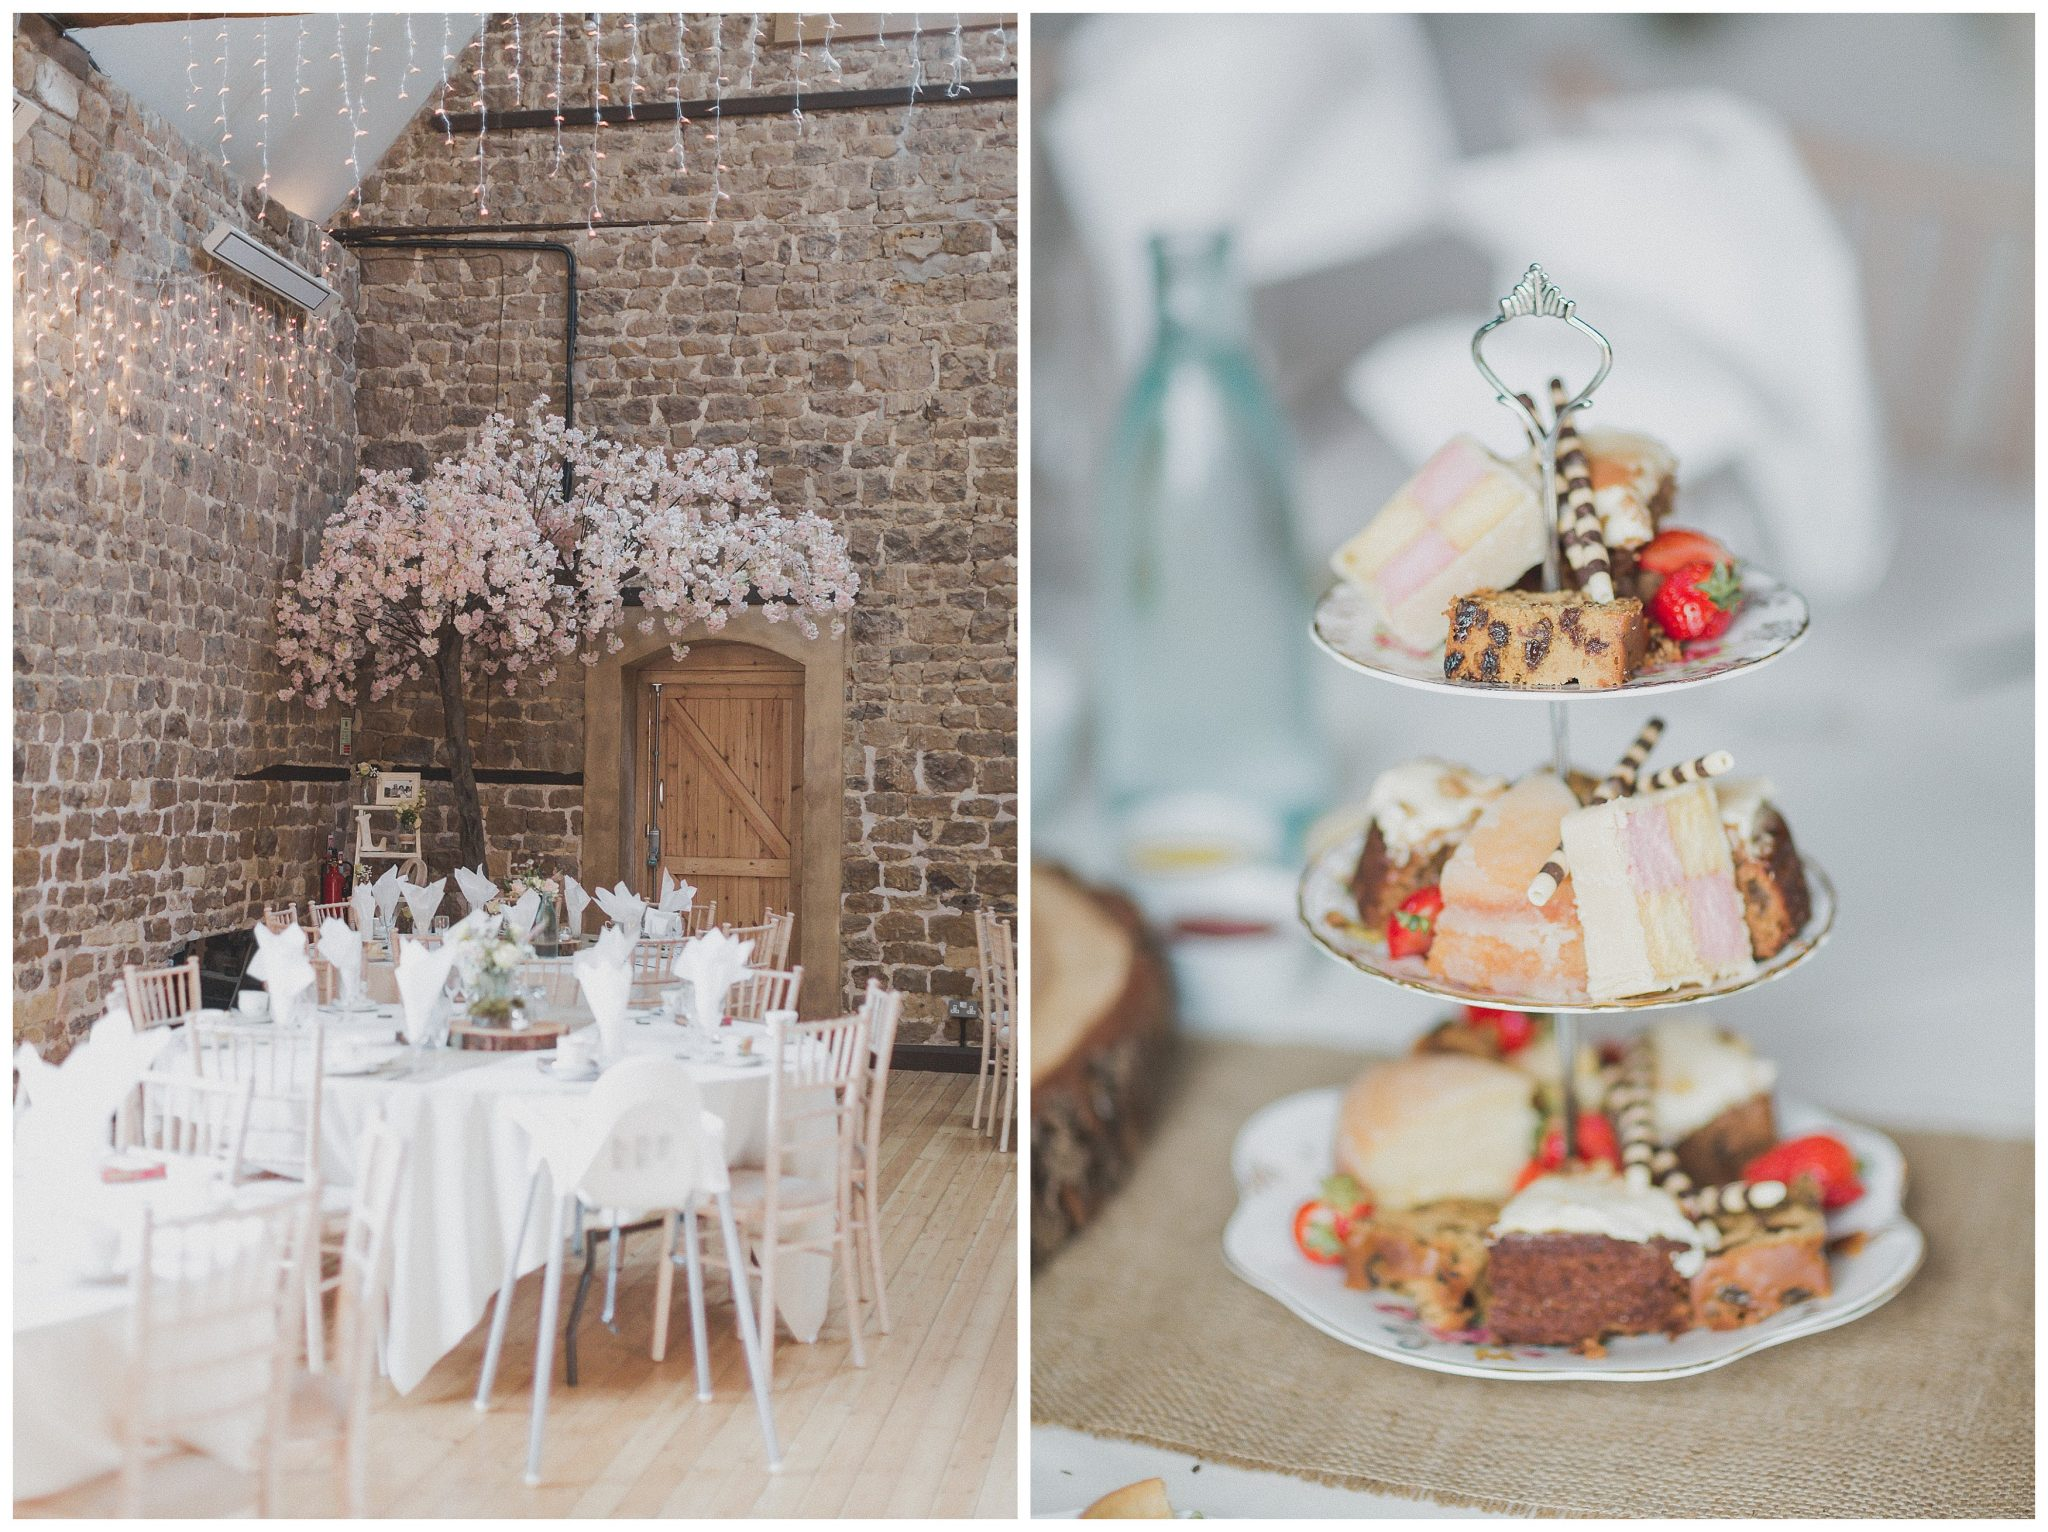 Rustic Wedding Venue the Barns at Hunsbury